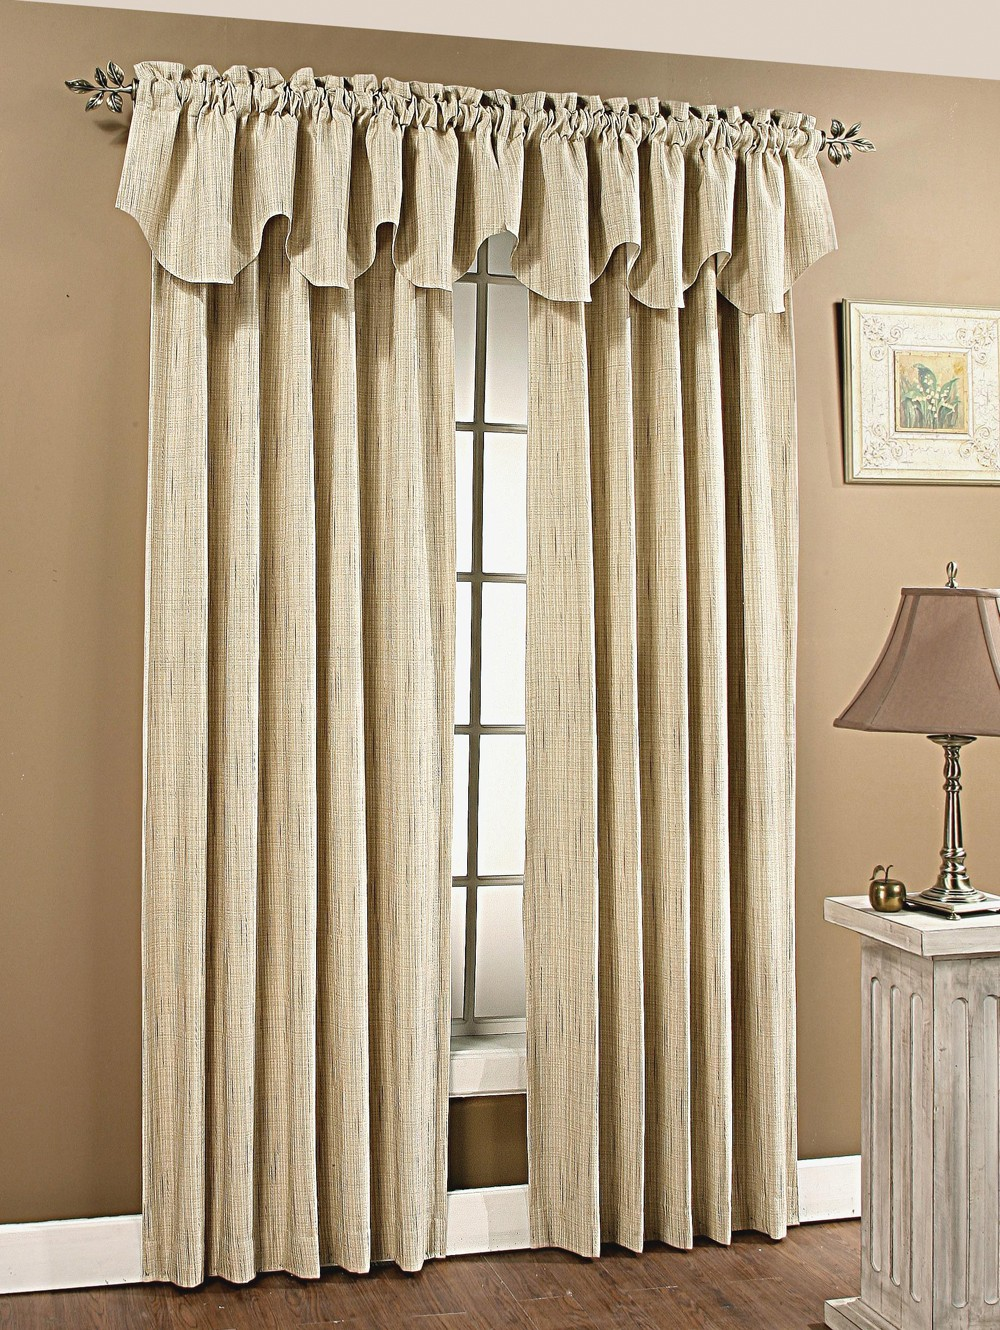 1000x1330px 7 Gorgeous Thermal Insulated Curtains Picture in Others